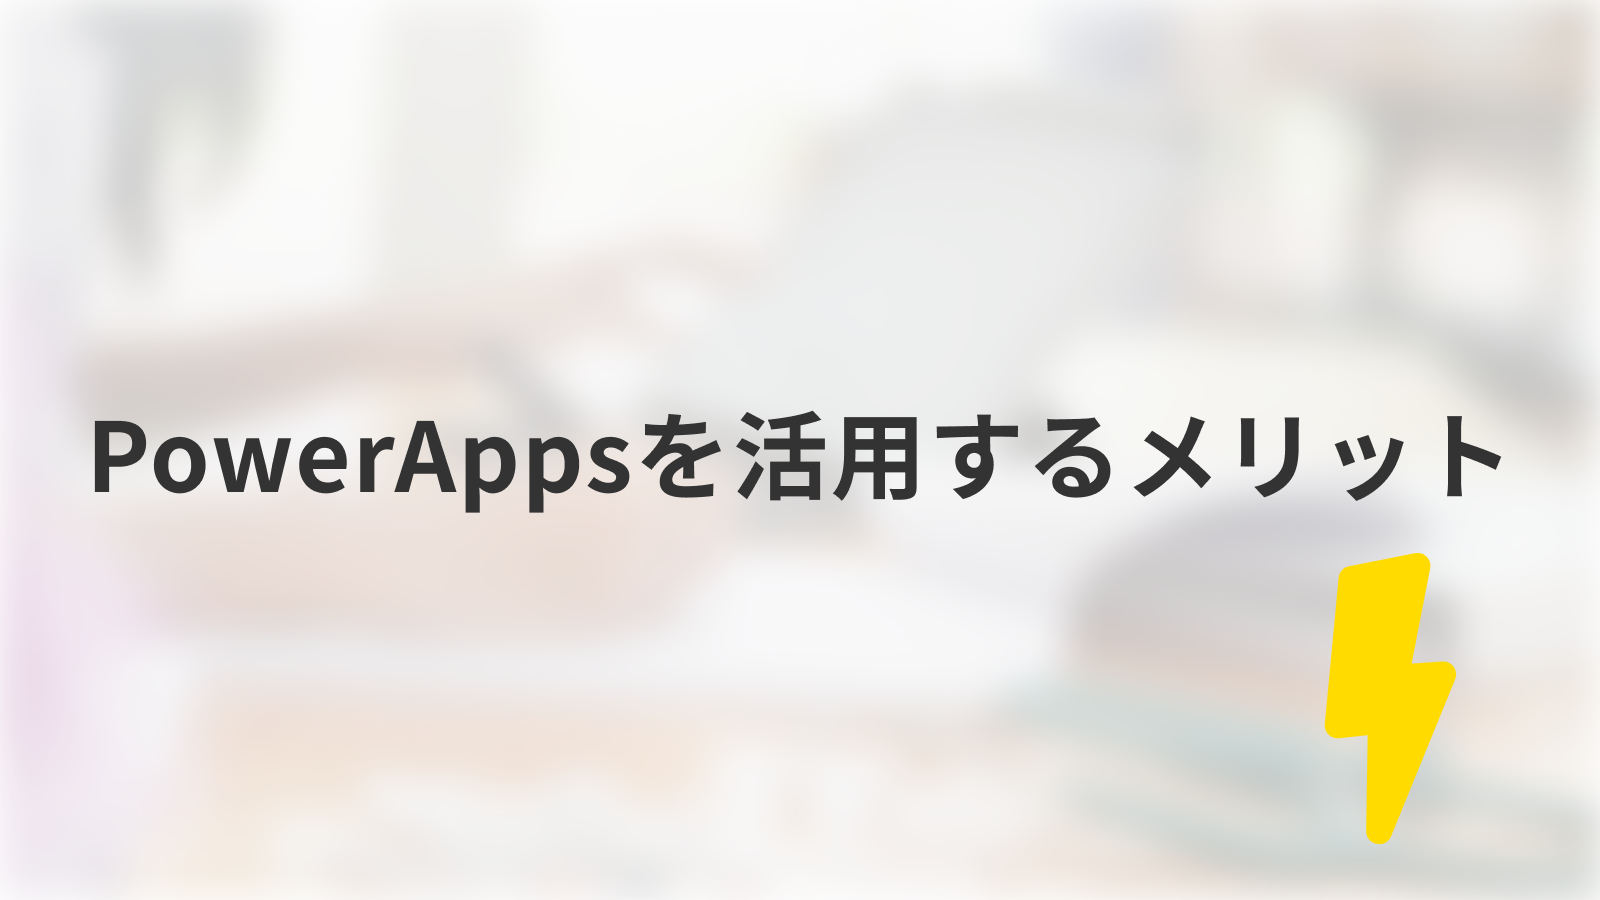 PowerAppsを活用するメリット